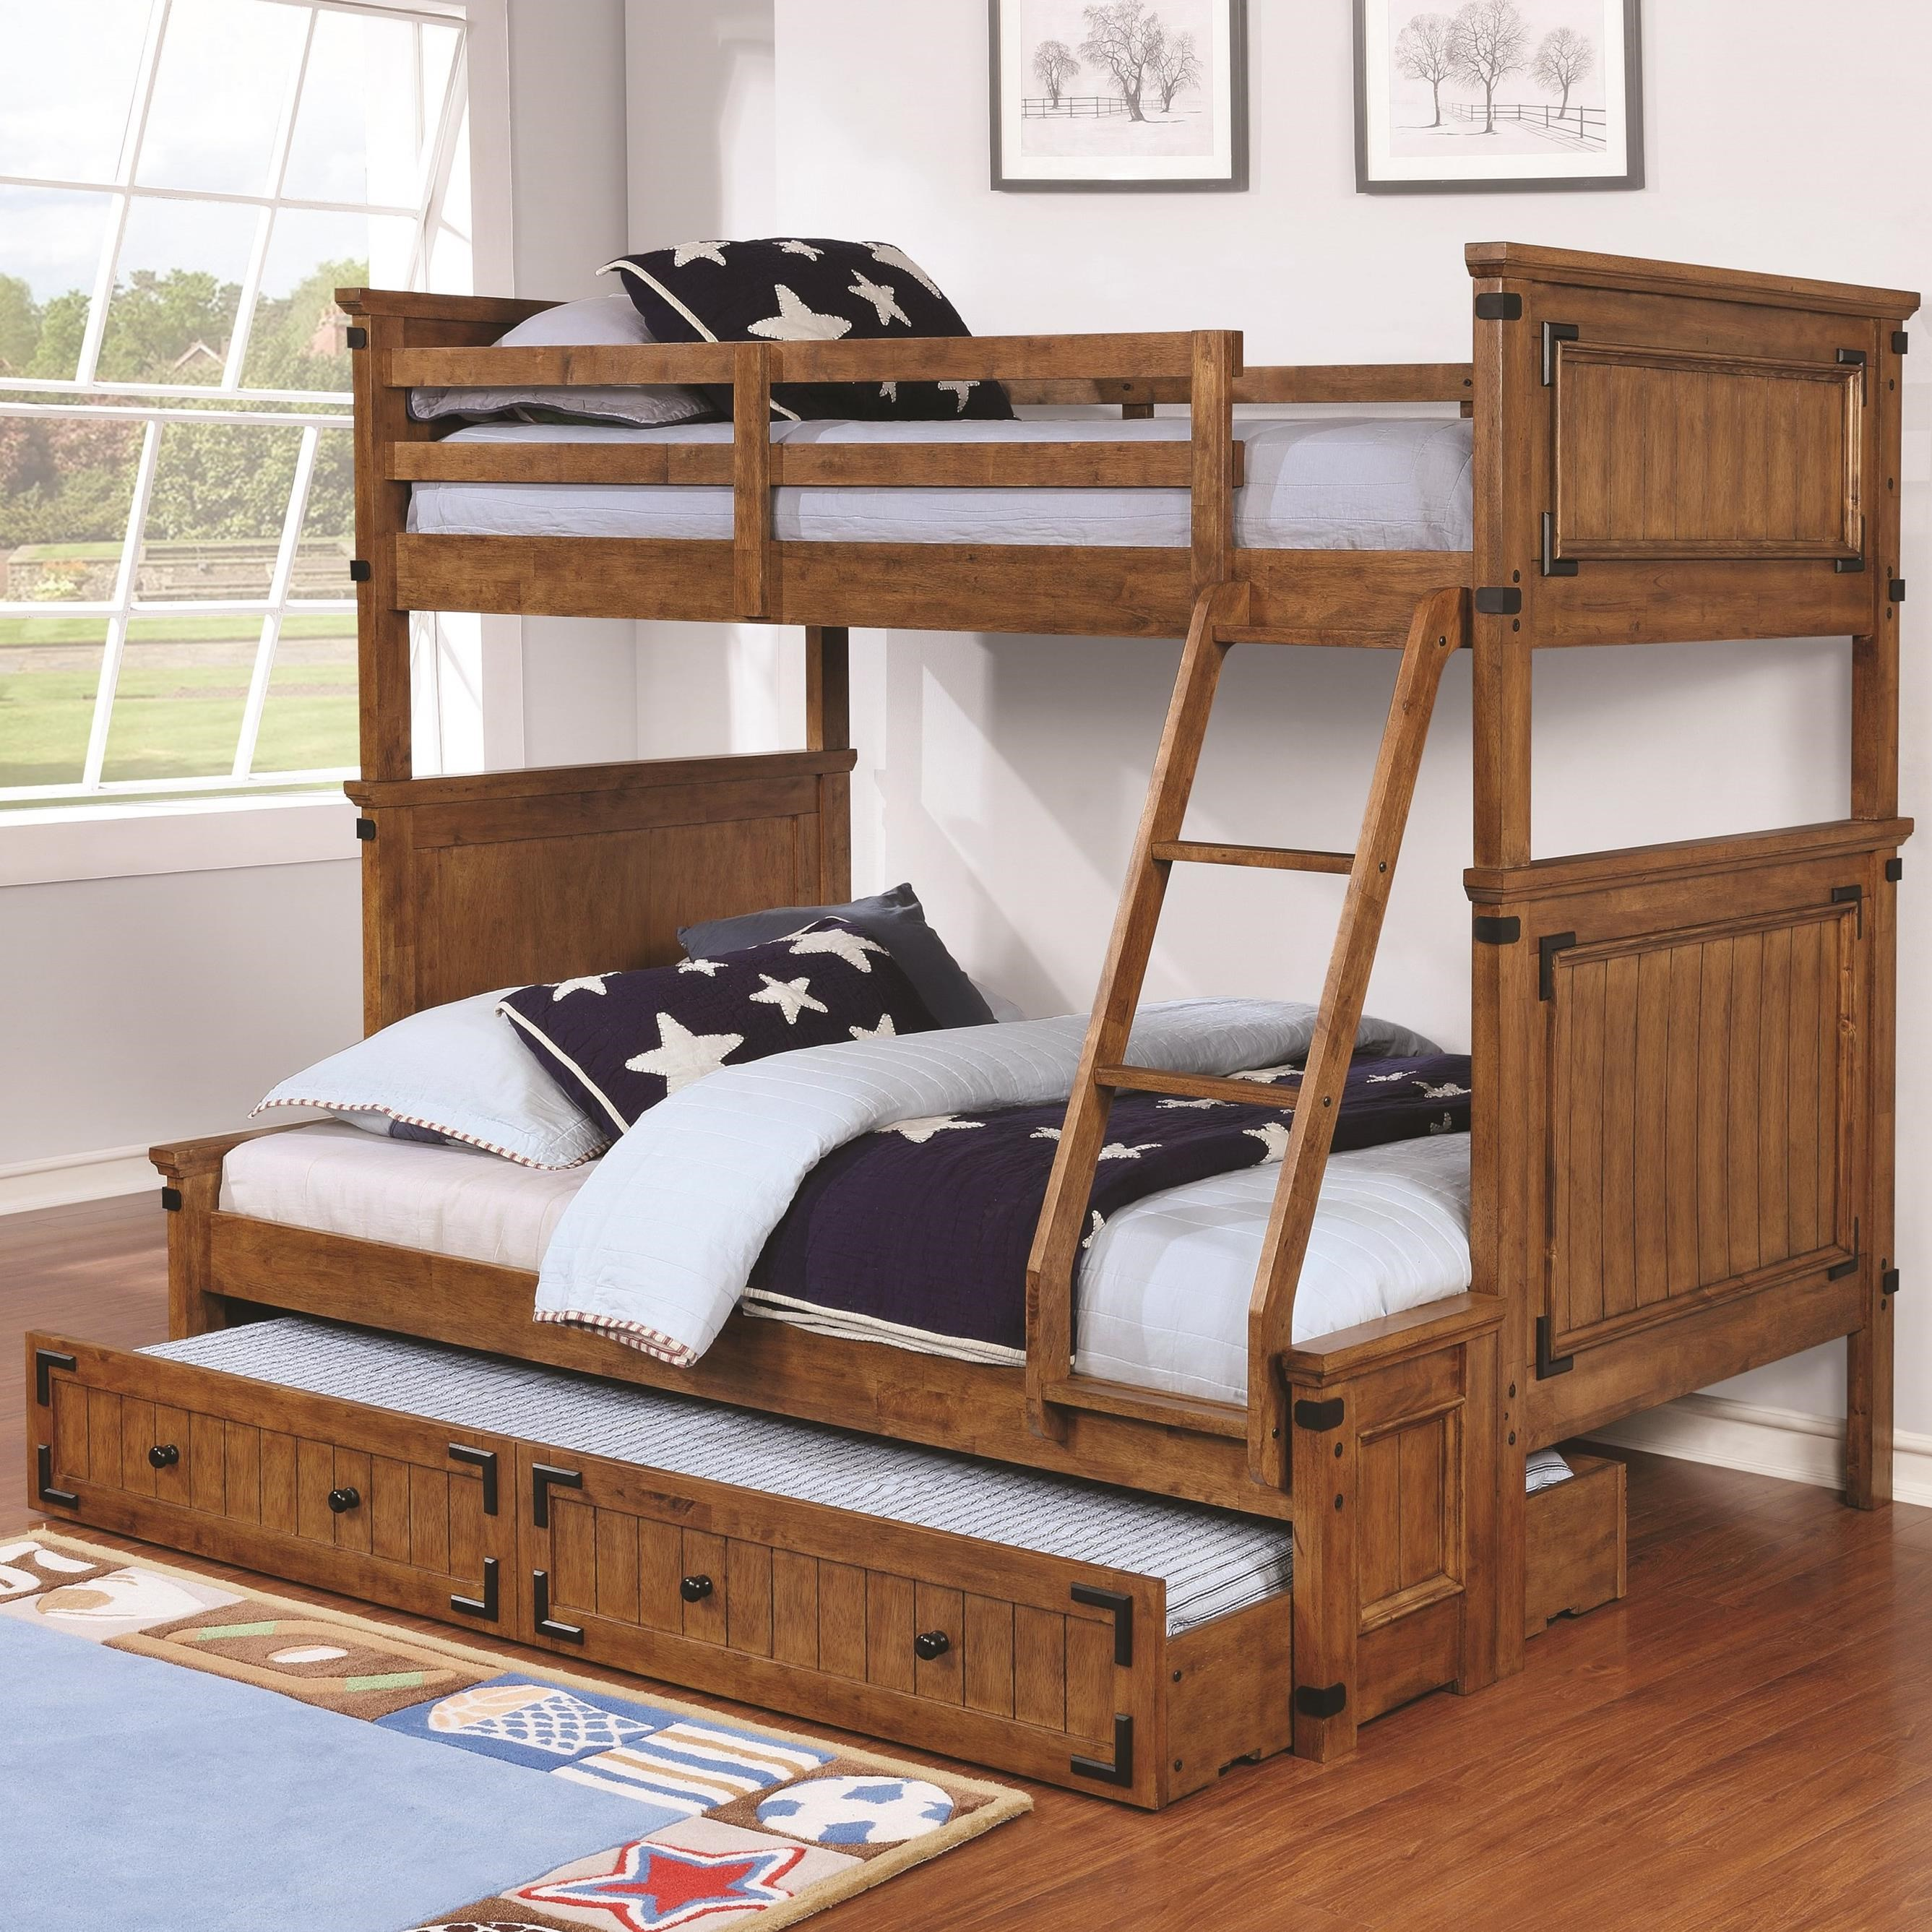 Coronado Bunk Bed Casual Wooden Twin Over Full Bunk Bed